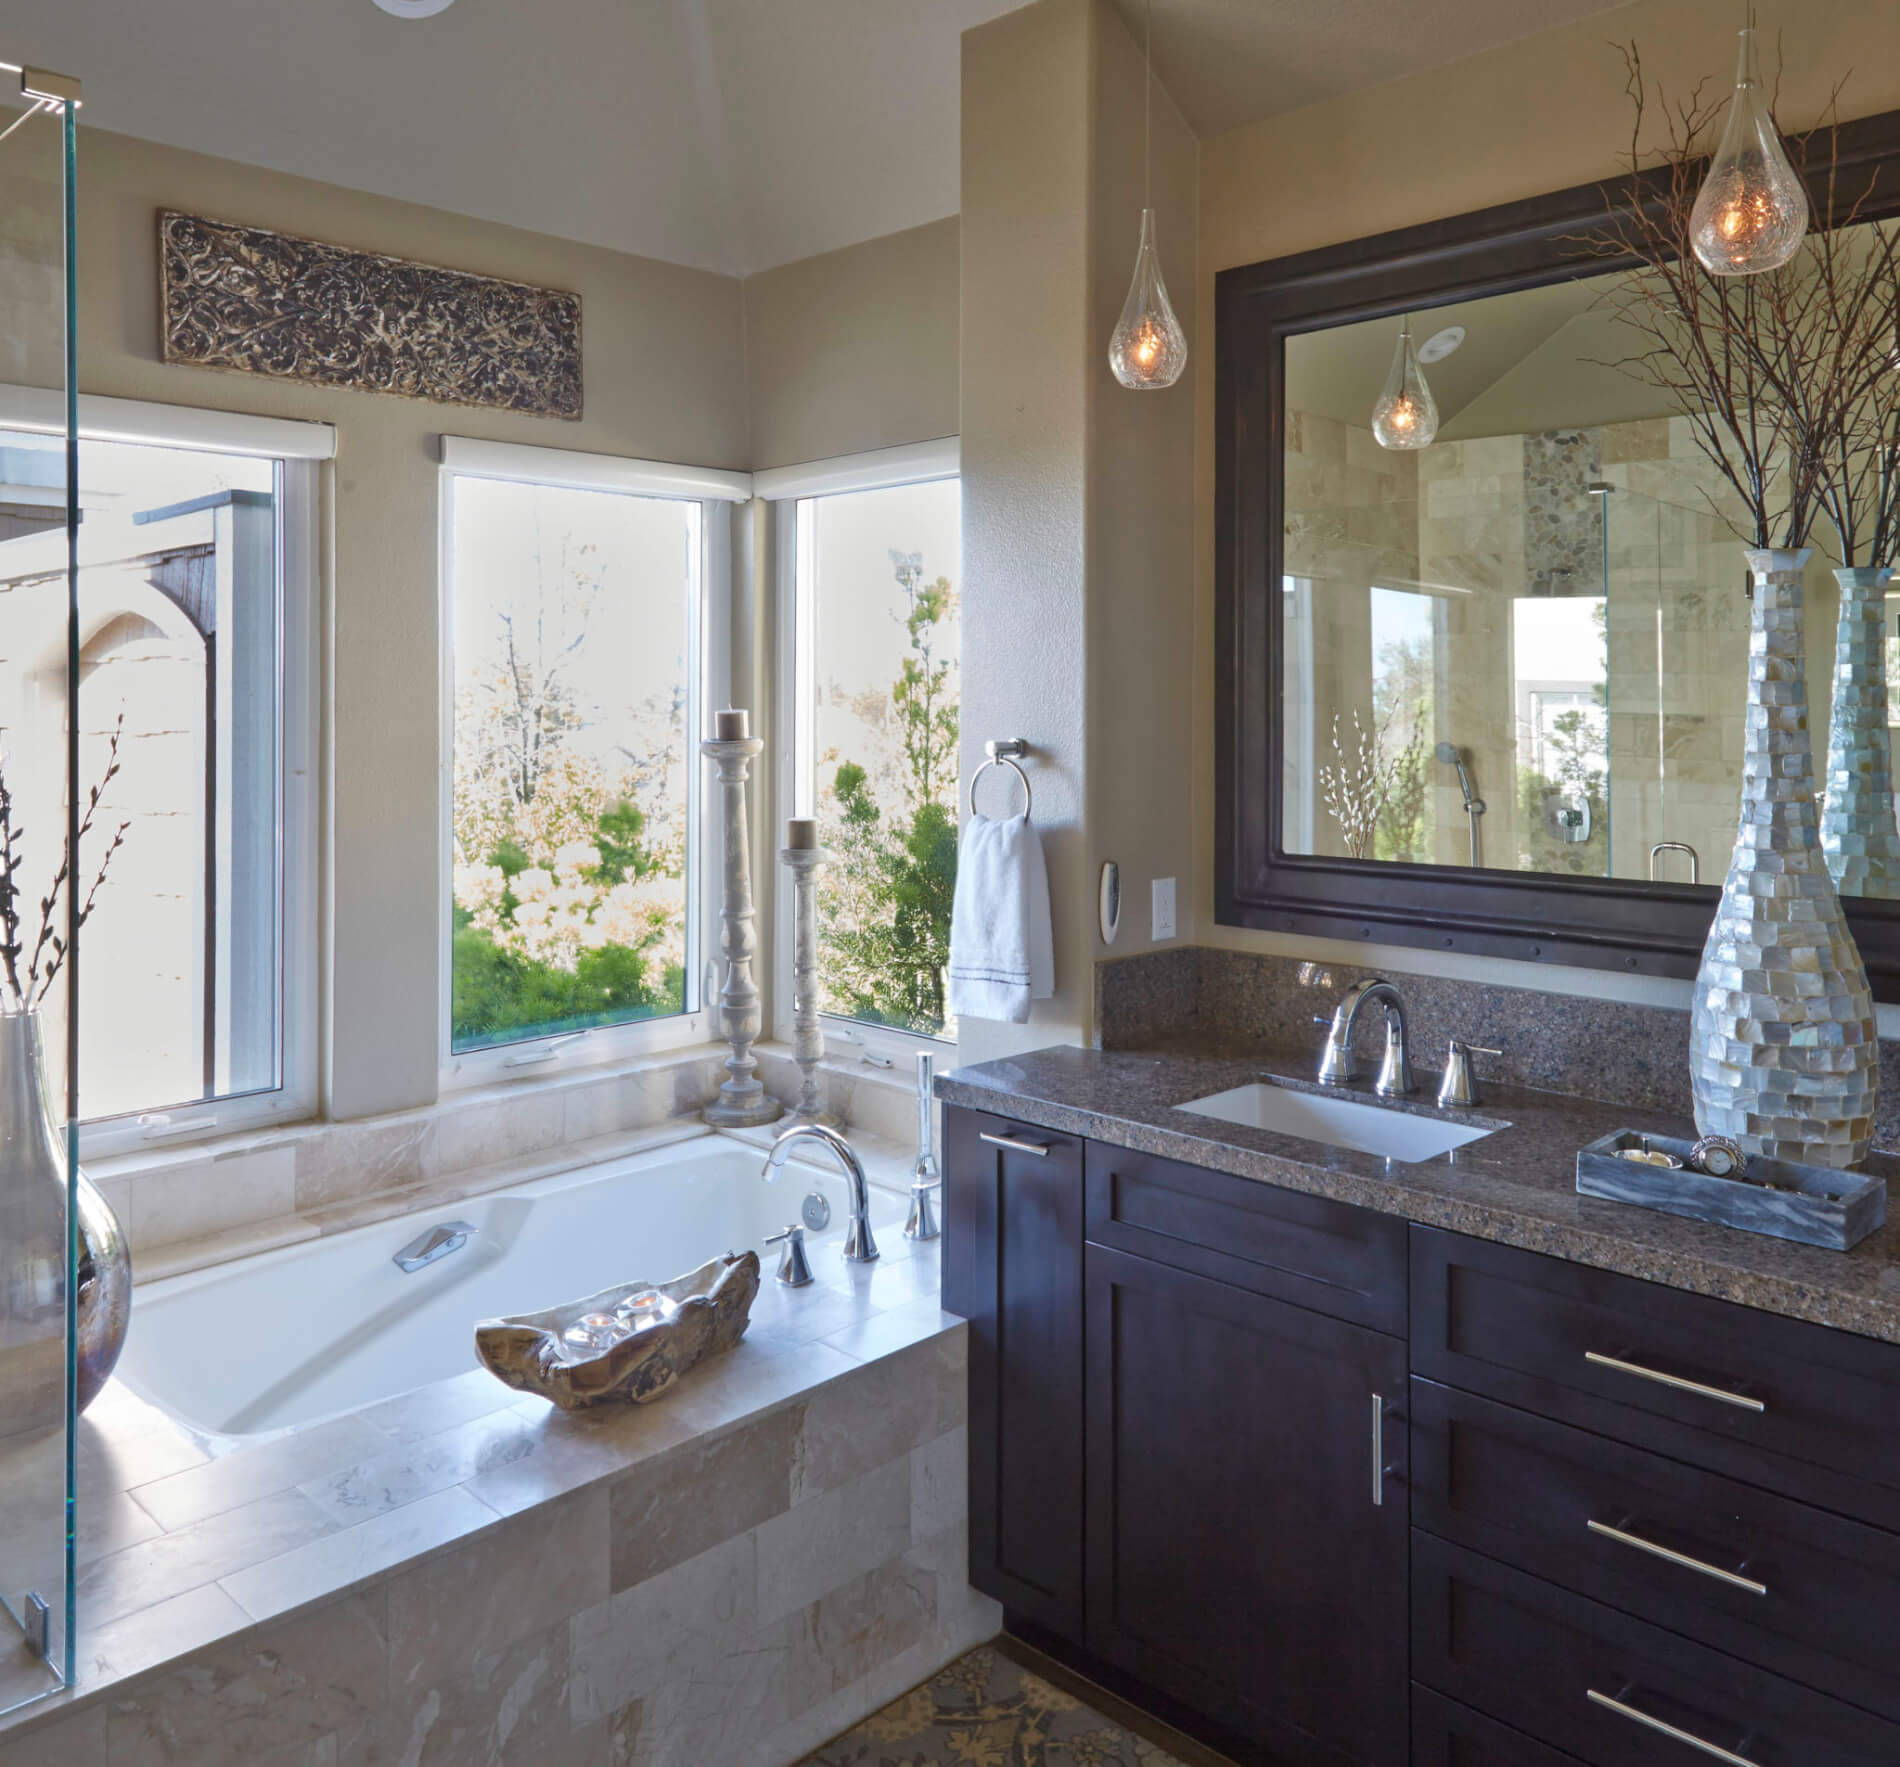 Bathroom contractors, Bathroom Renovation, Bathroom Renovators